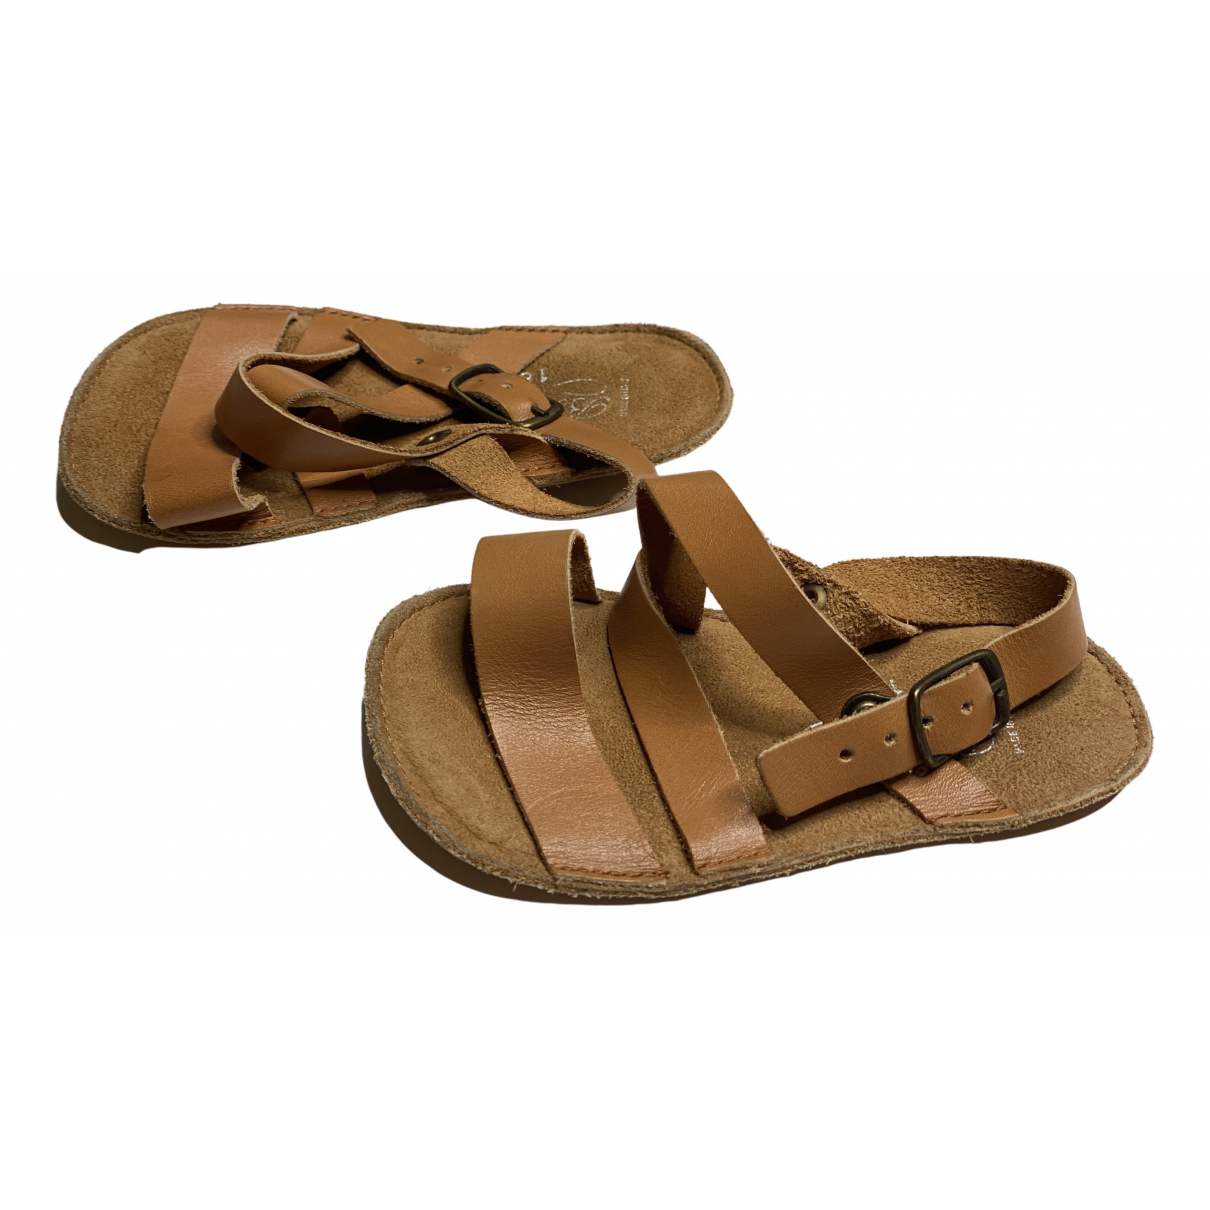 Bonpoint N Brown Leather Sandals for Kids 18 FR